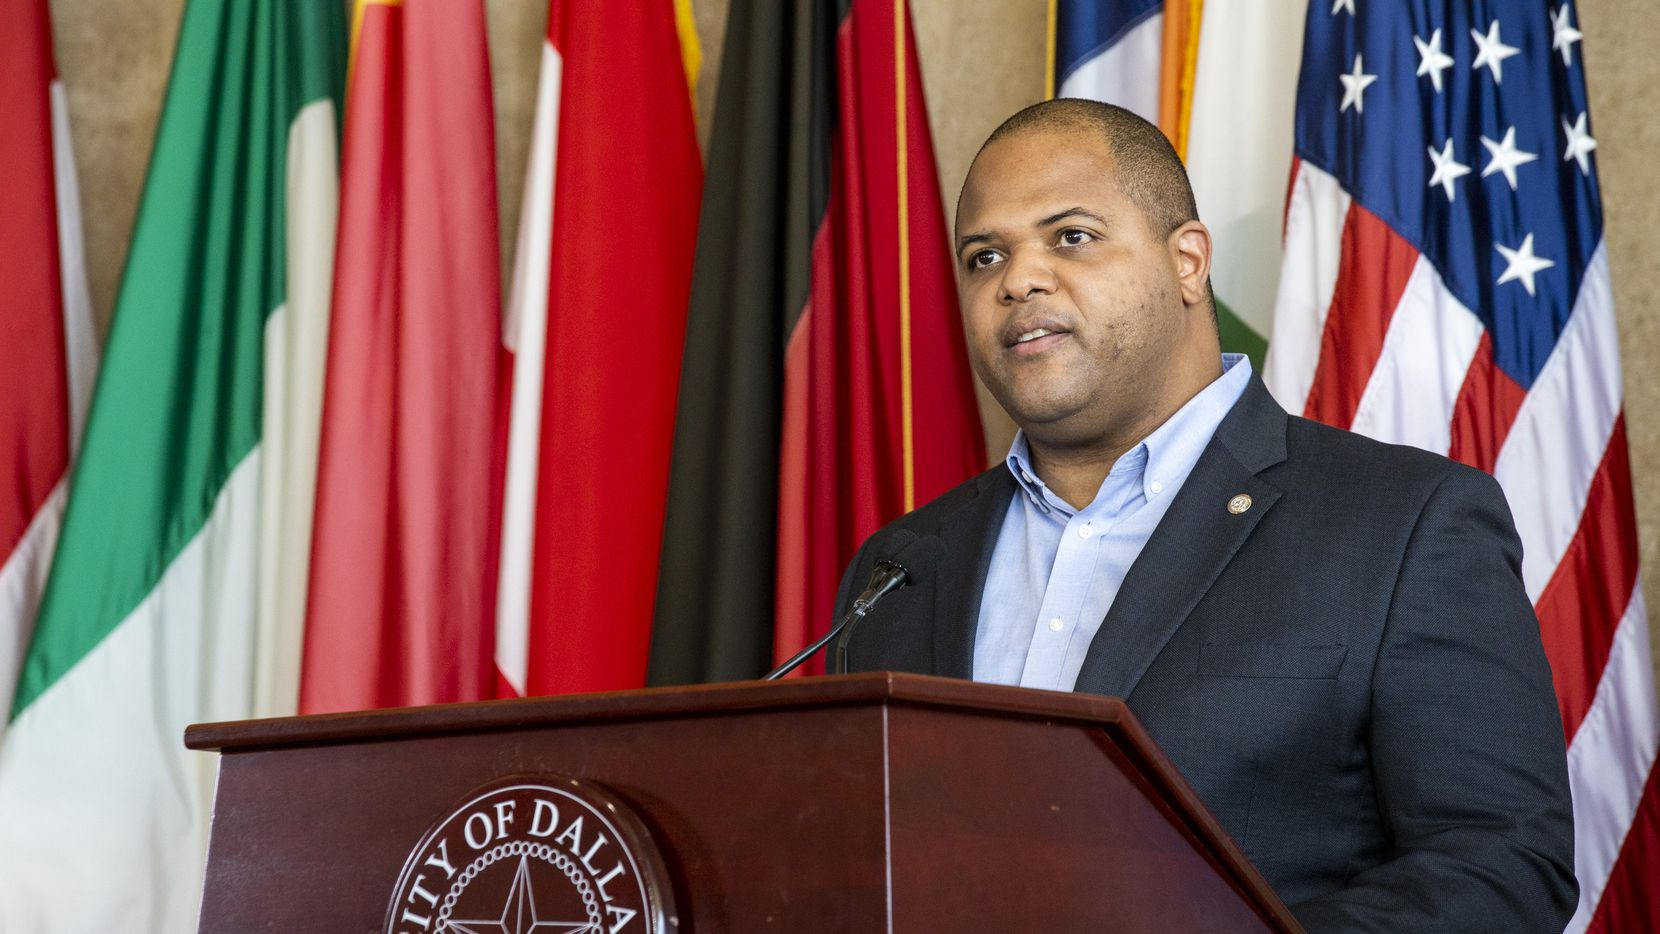 Mayor Eric Johnson announces action passed by the city council to help residents and businesses affected by the COVID-19 pandemic during a press conference at Dallas City Hall in Dallas on Tuesday, April 21, 2020.